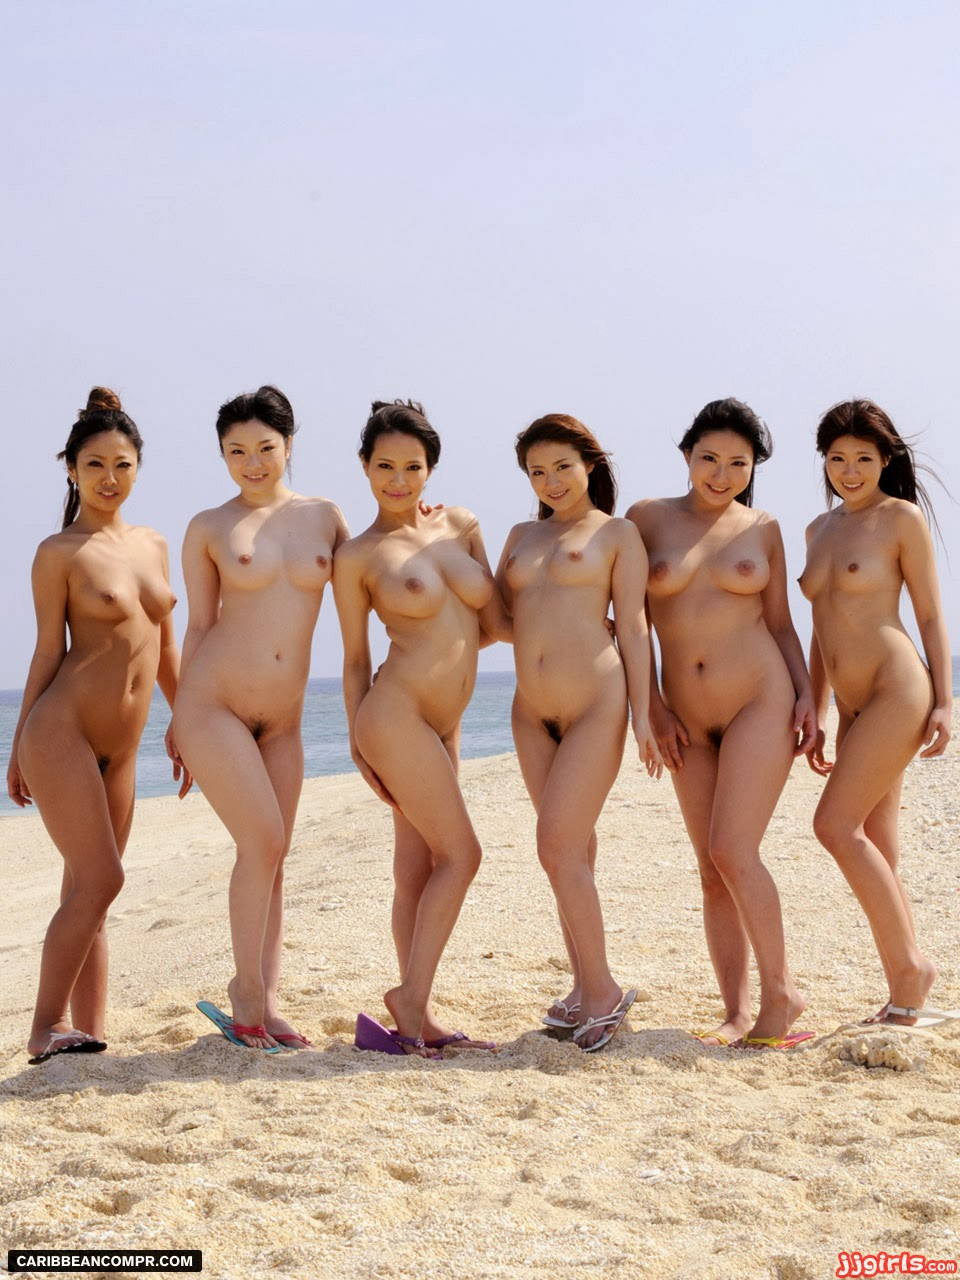 Asian nude photography thanks